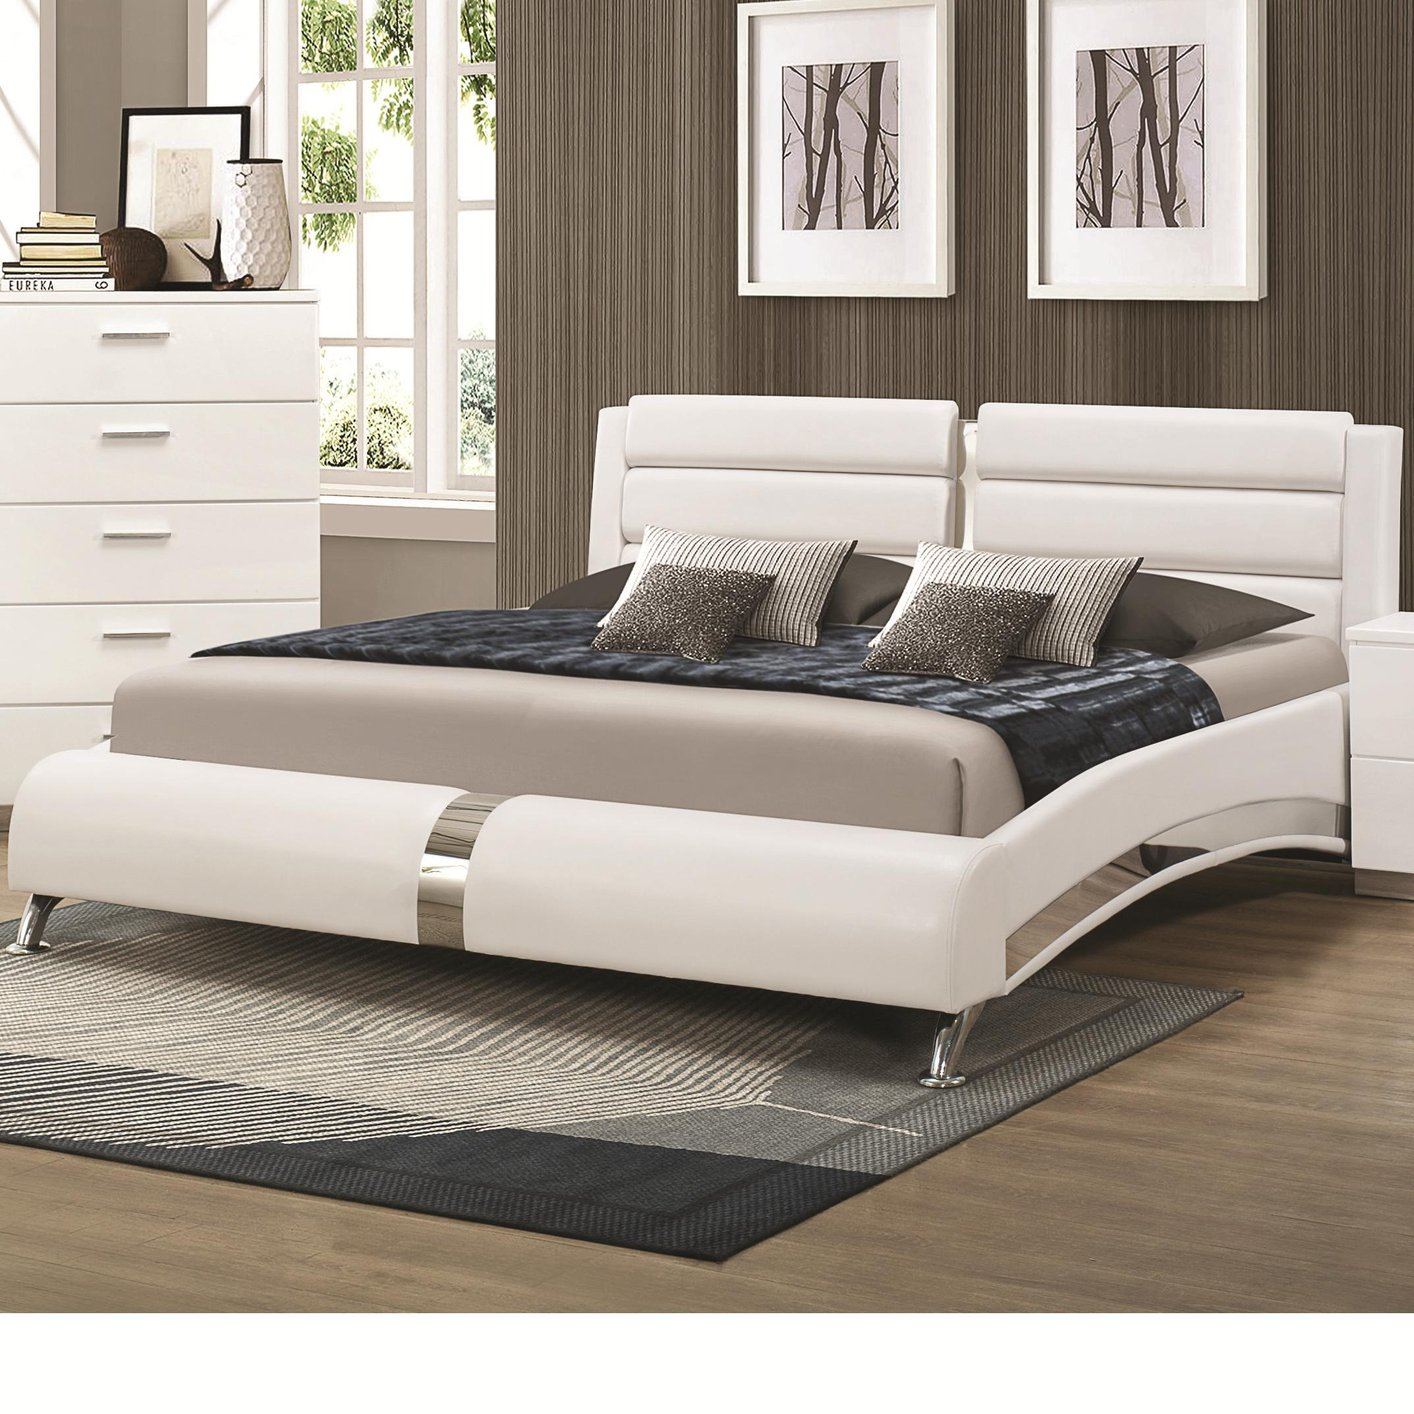 Coaster Q Silver Queen Size Wood Bed